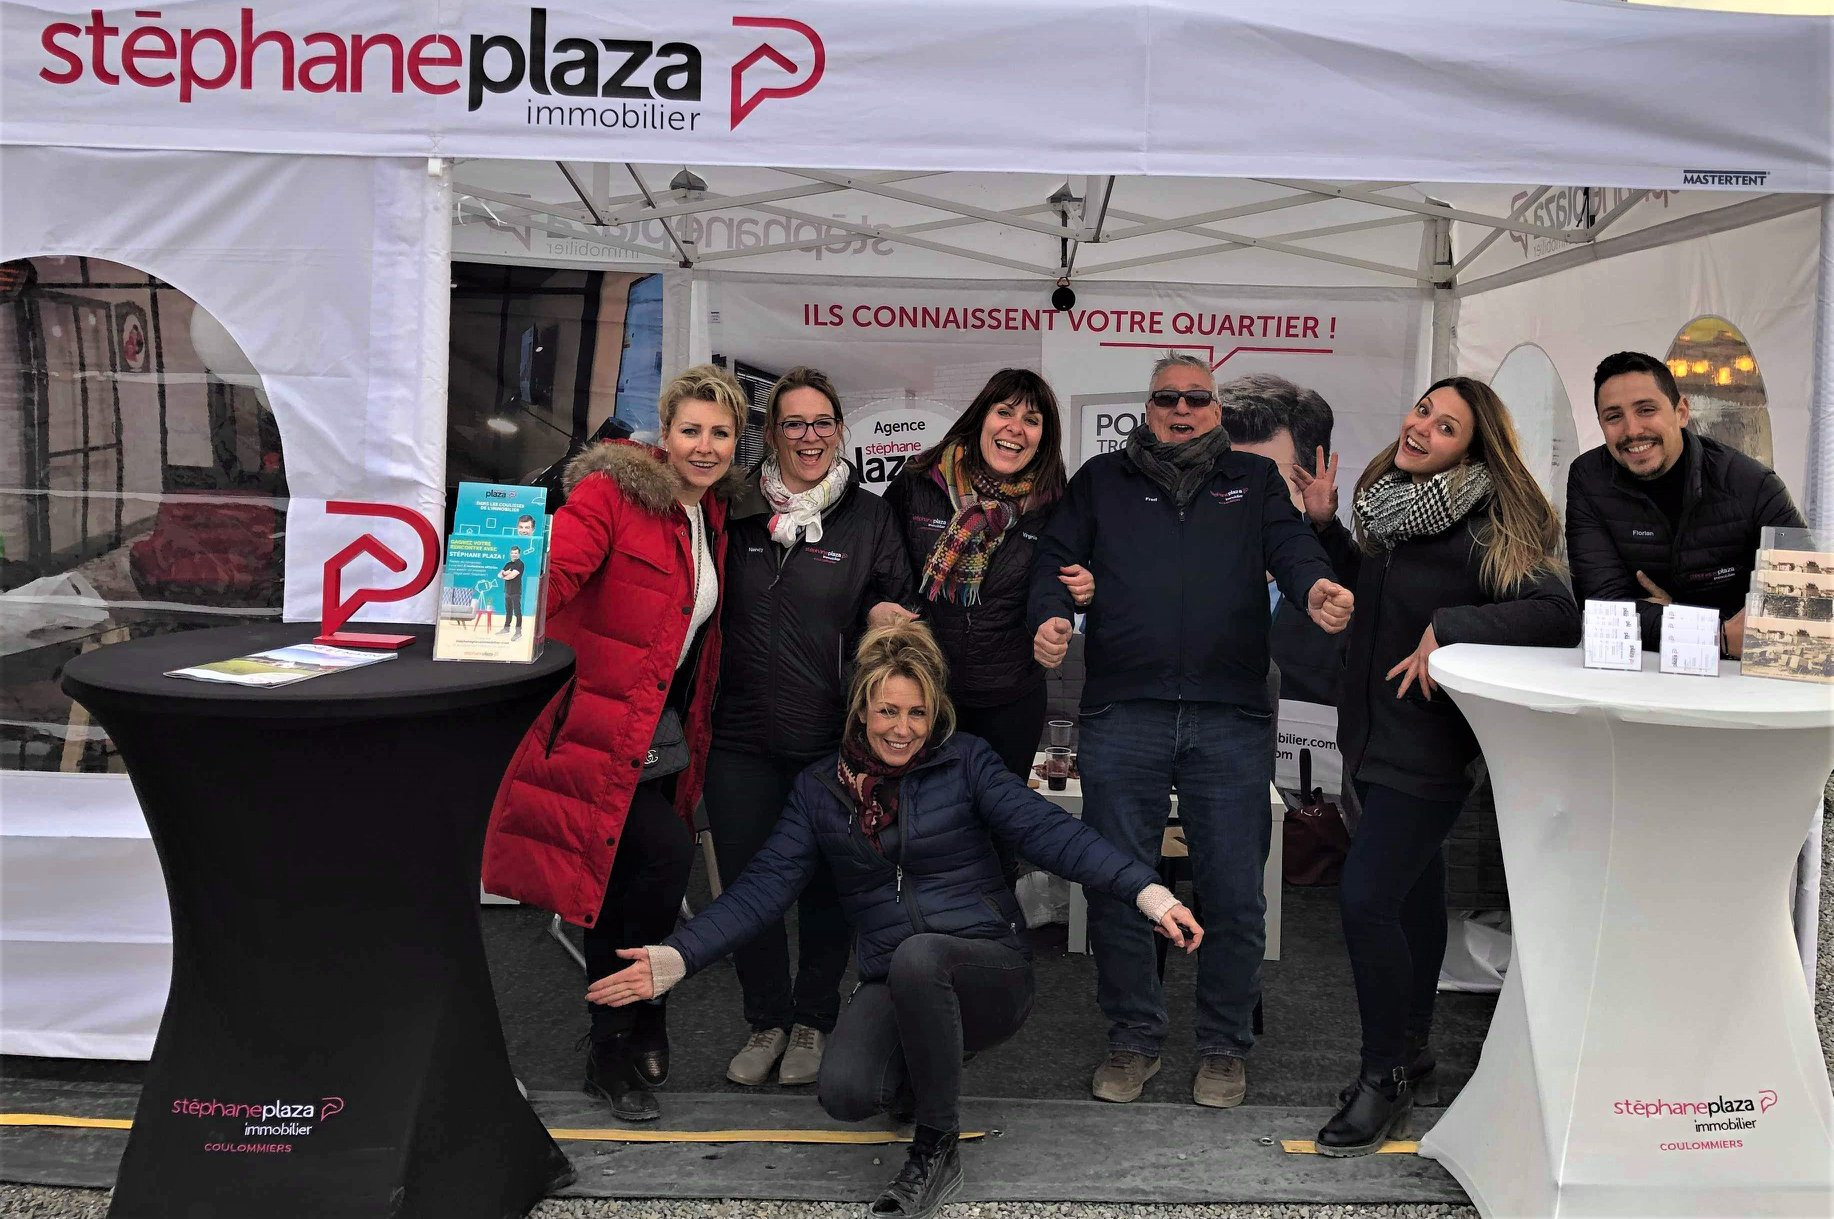 Stéphane Plaza Immobilier Coulommiers